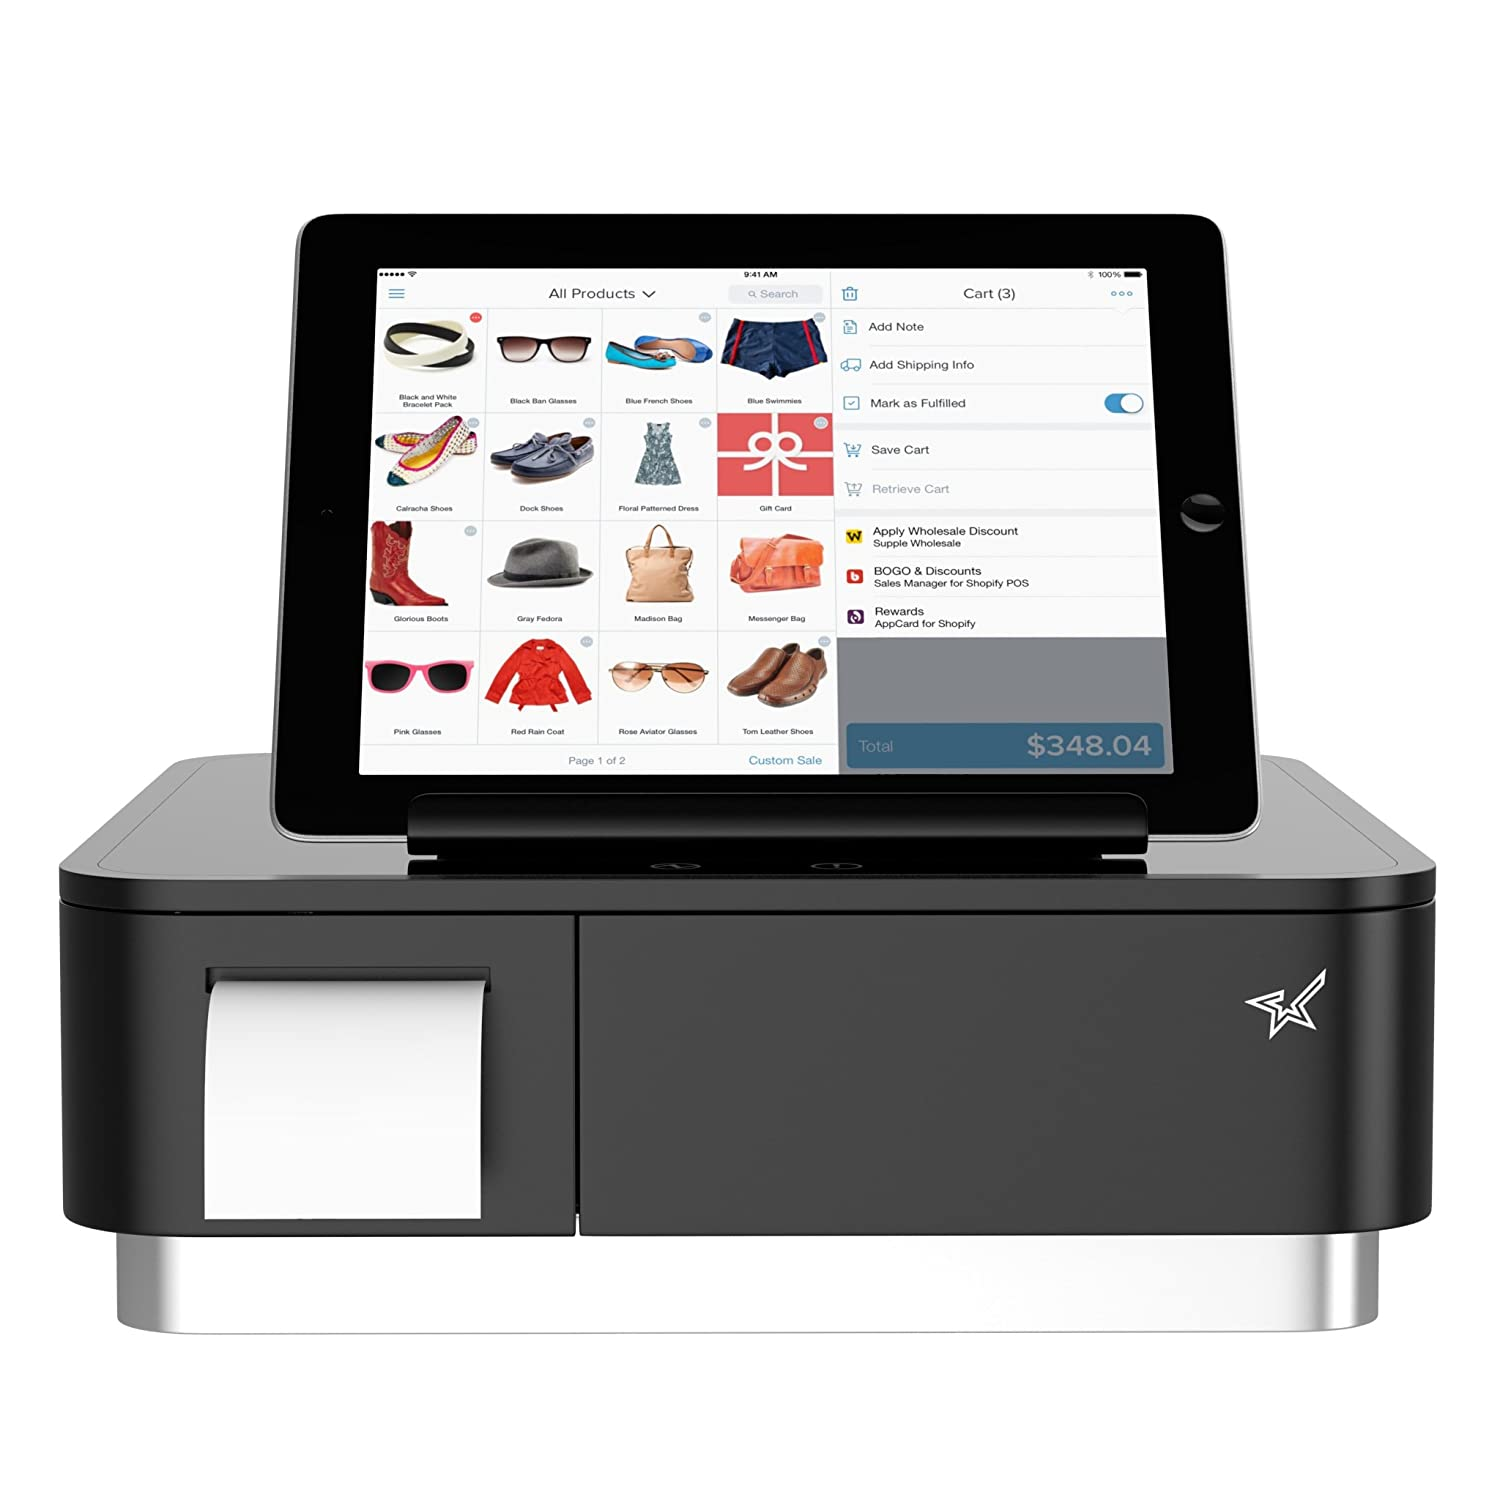 Square and Shopify Register Hardware Bundle Compact- Bluetooth Receipt  Printer, 4 Bill 4 Coin Cash Drawer, Universal Table Stand for iPad Air,  Air2,